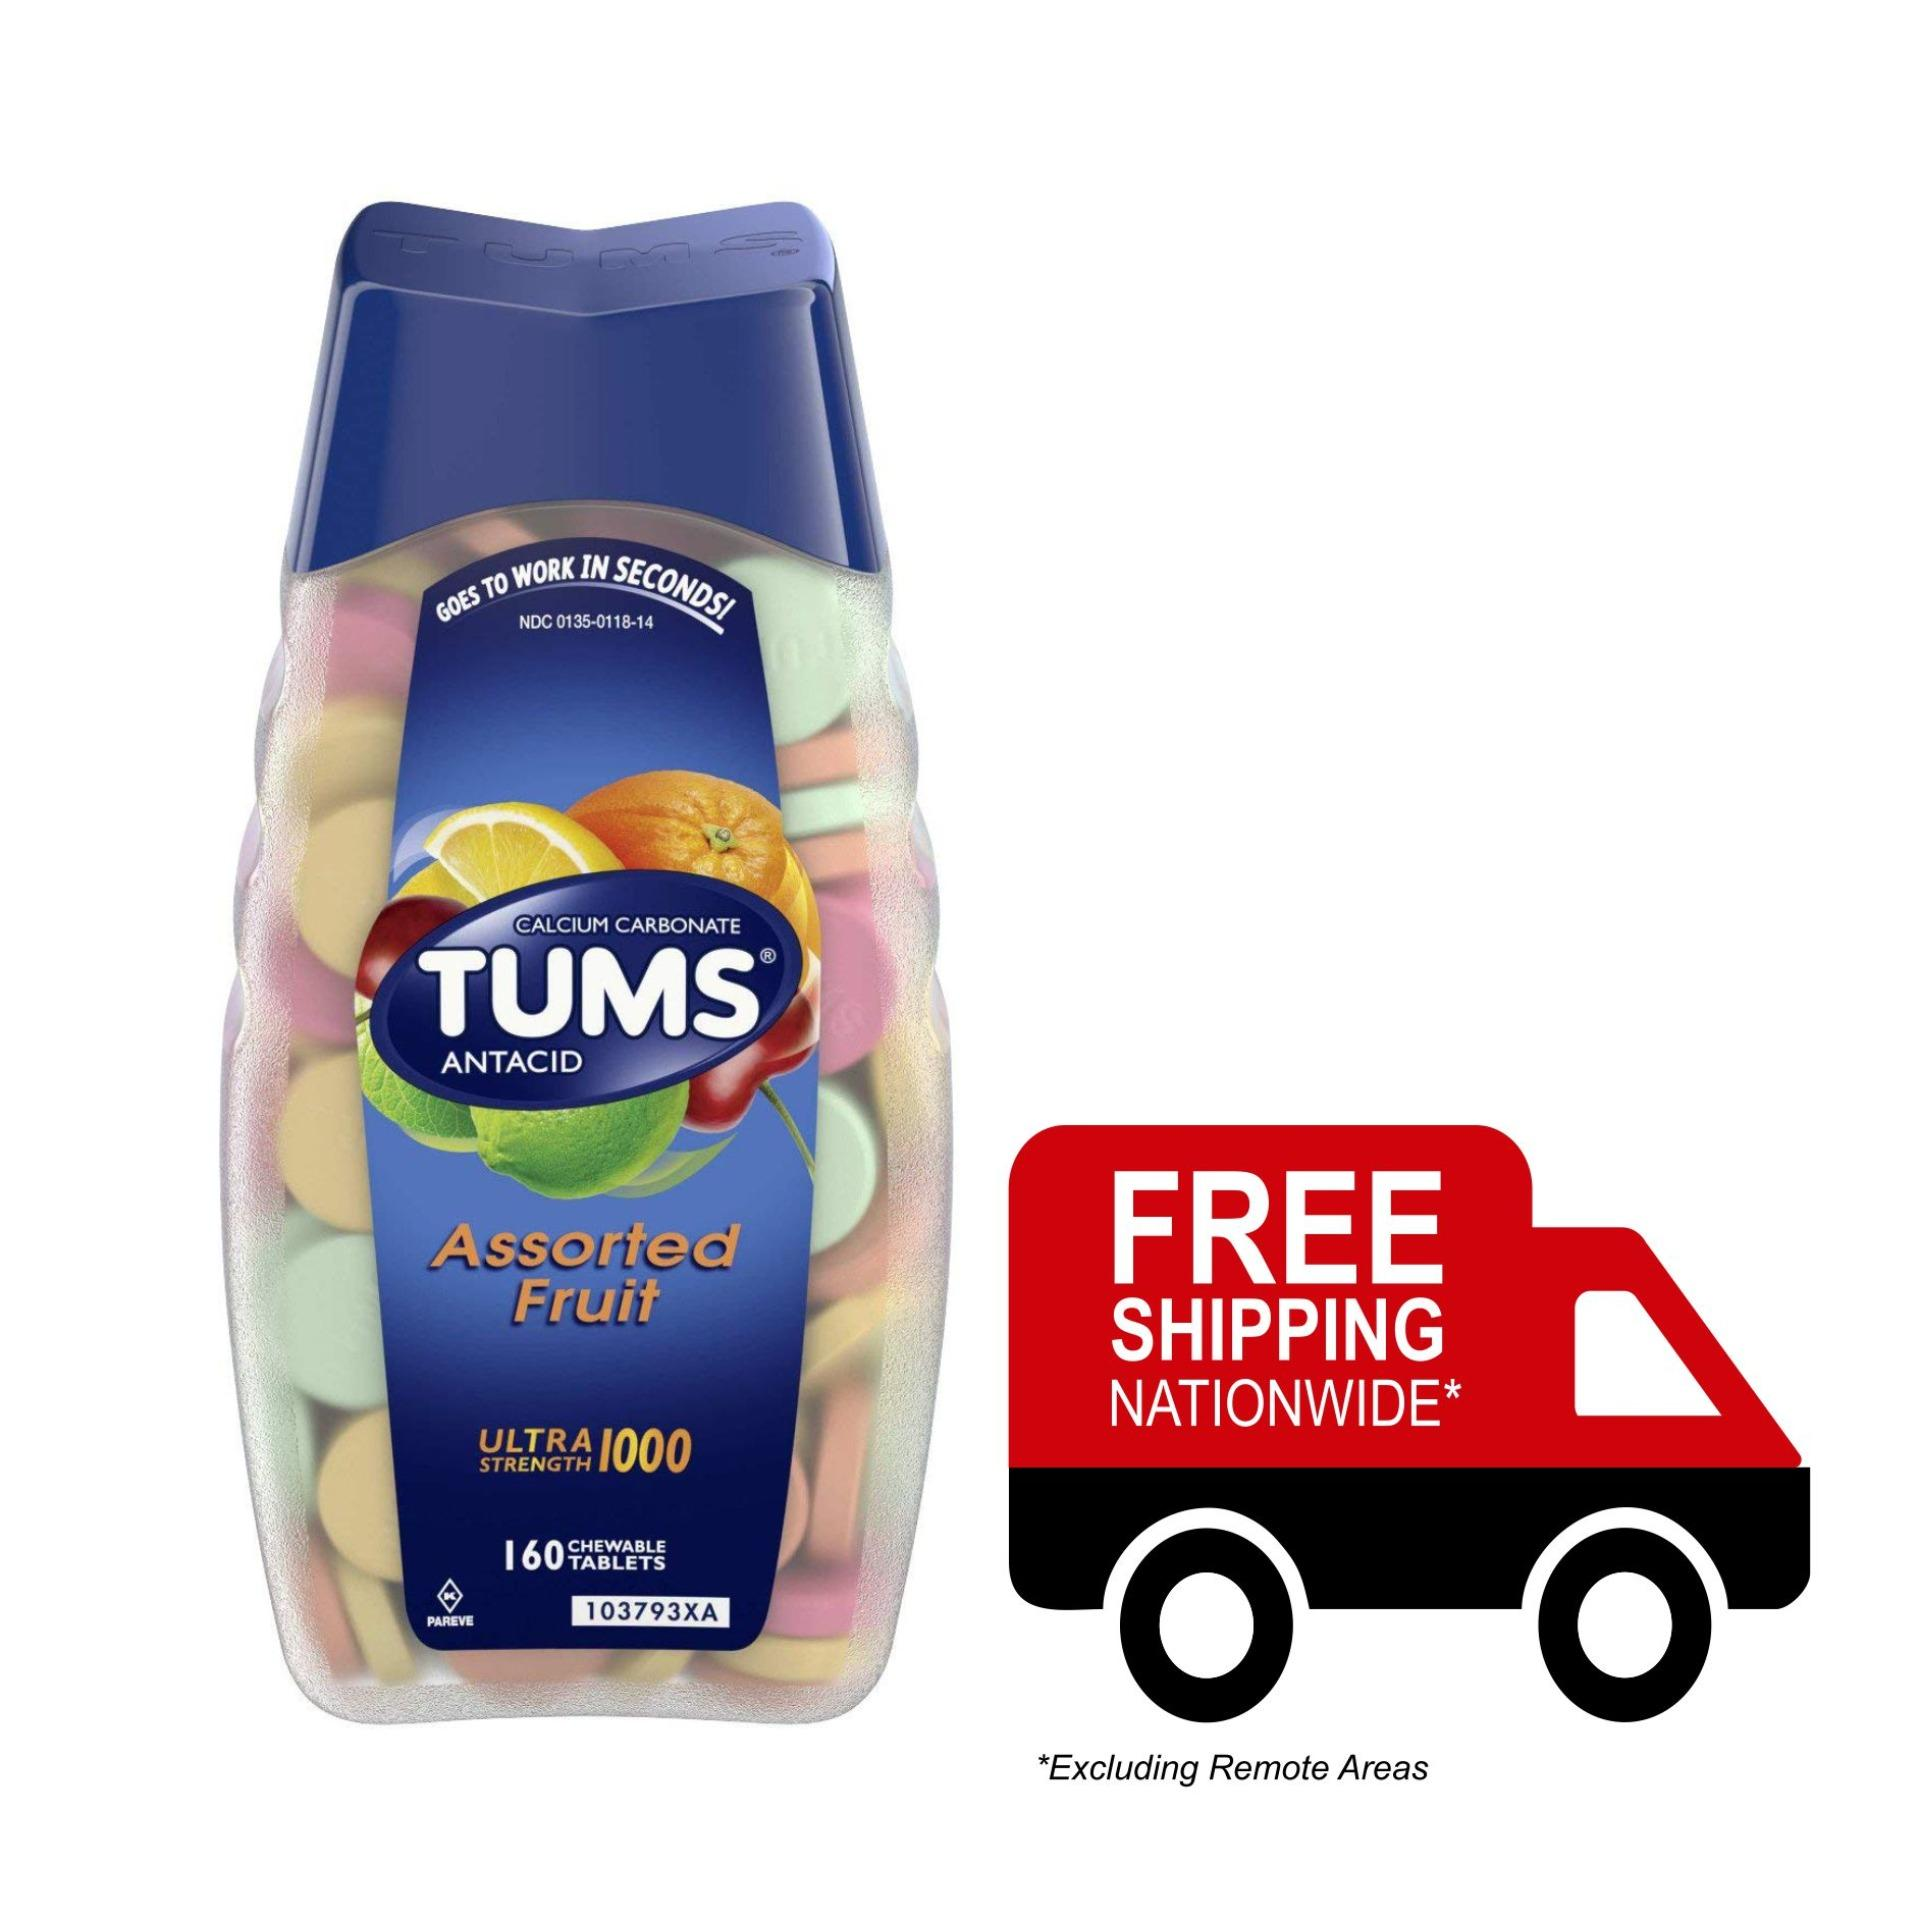 tums philippines: tums price list - anti-acid chewable pills for